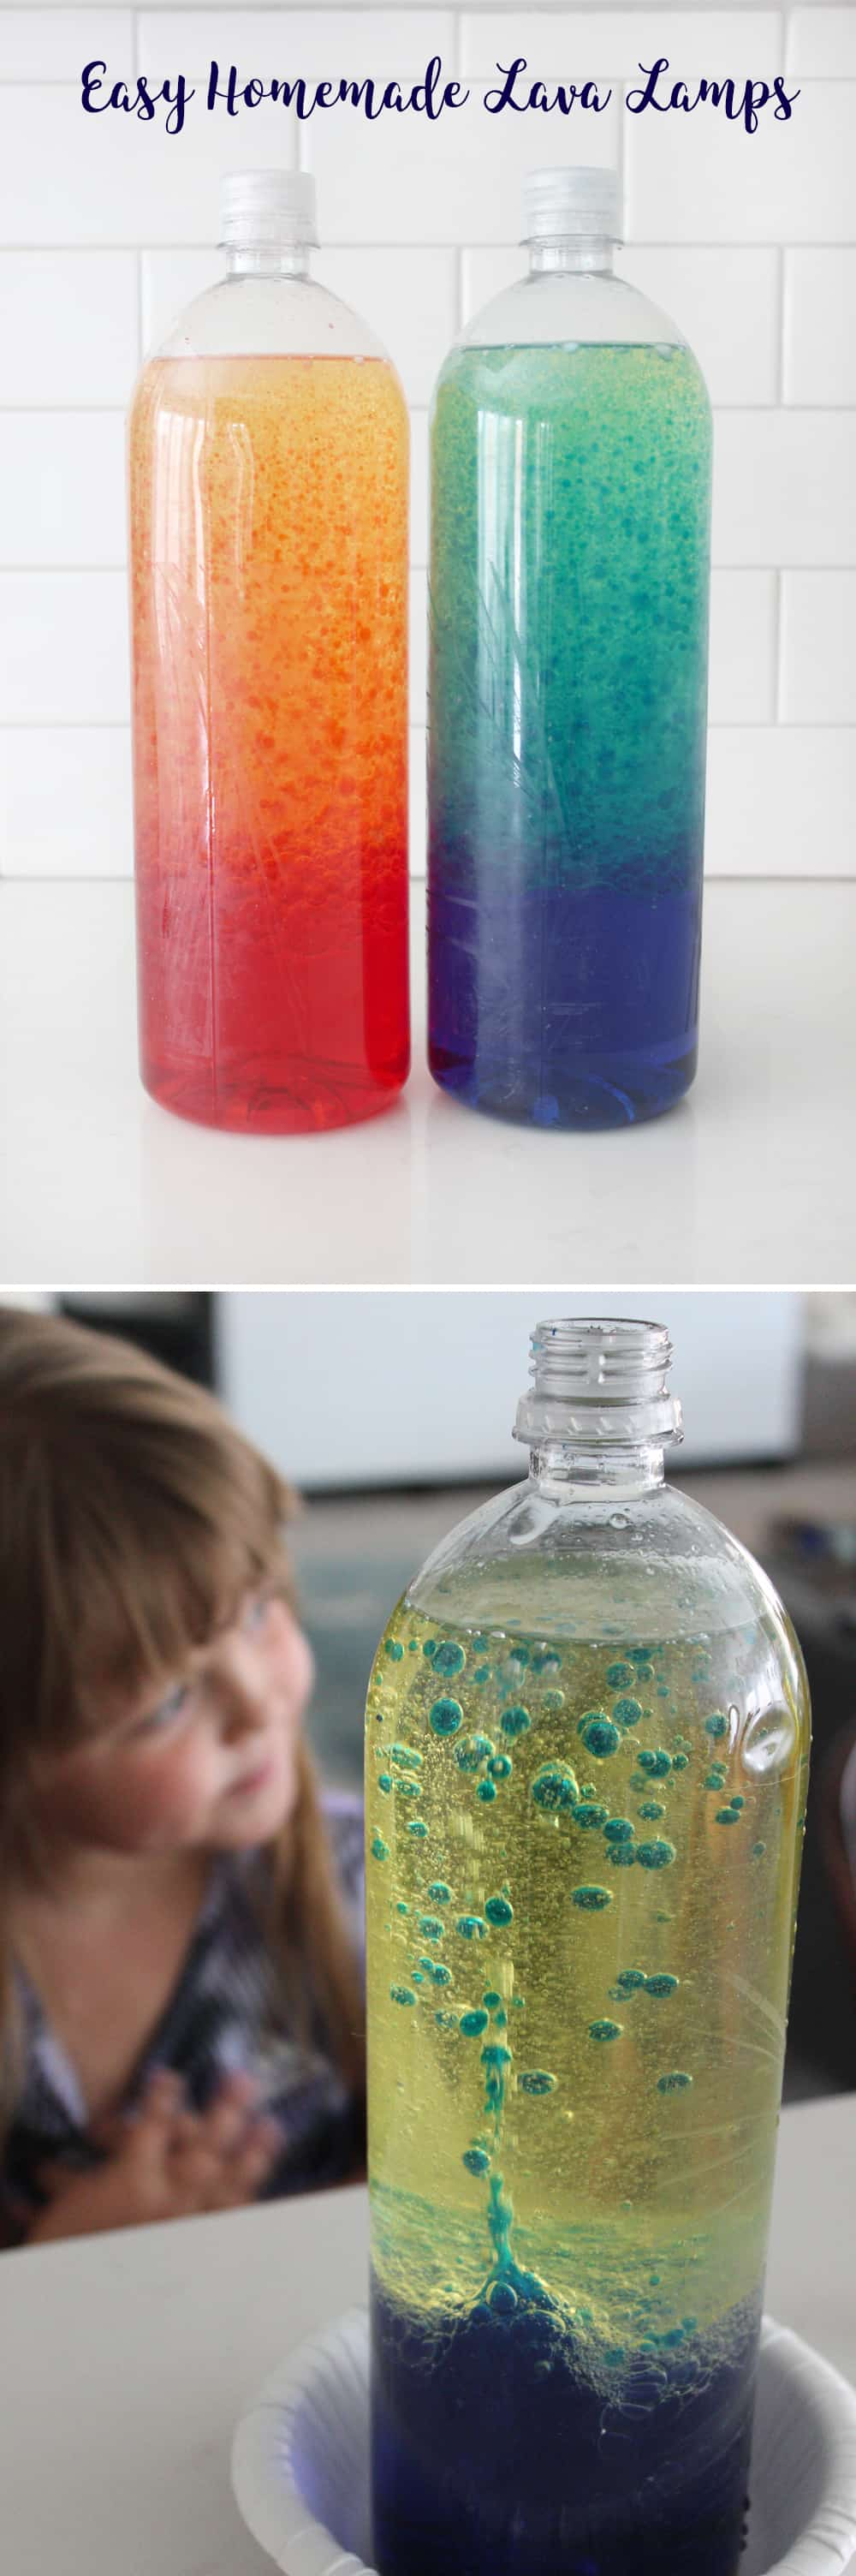 These Homemade Lava Lamps Were Such A Fun Activity With My Kiddos! They Had  So